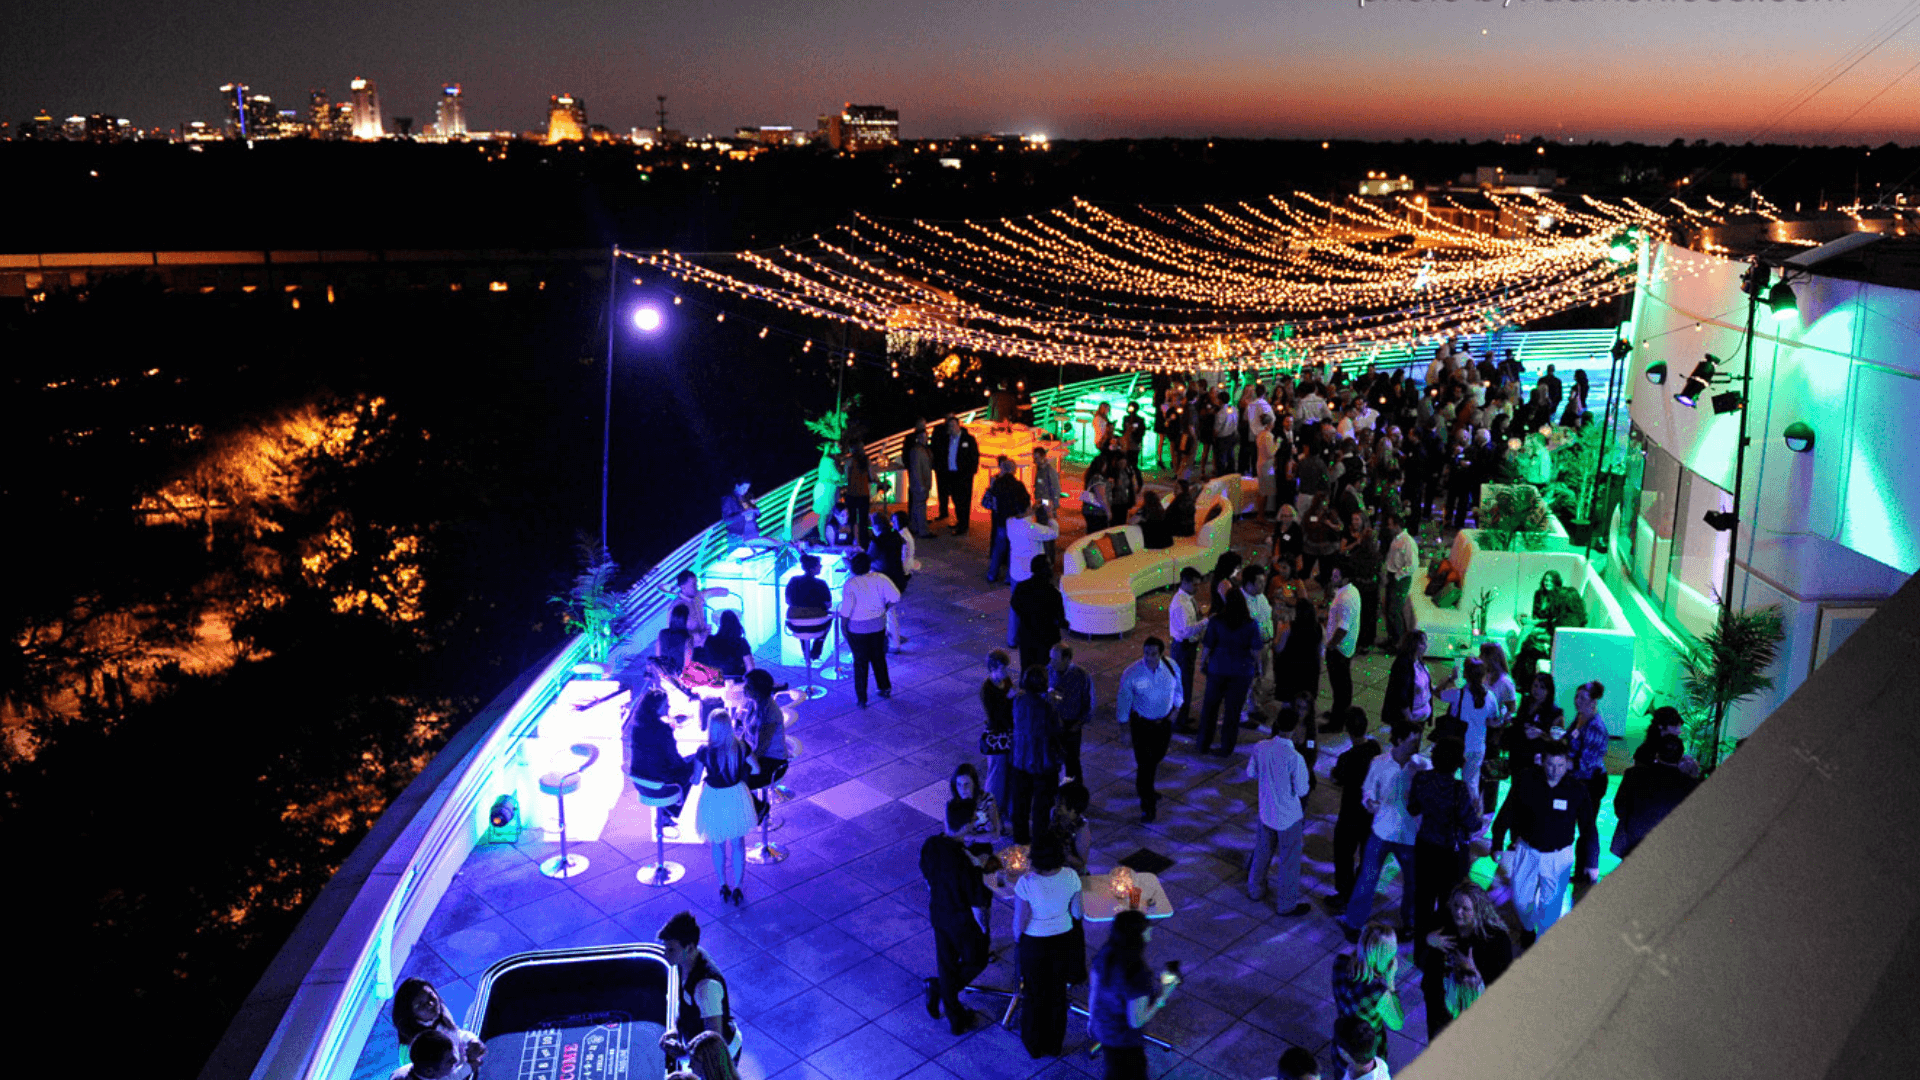 Event on the terrace at night